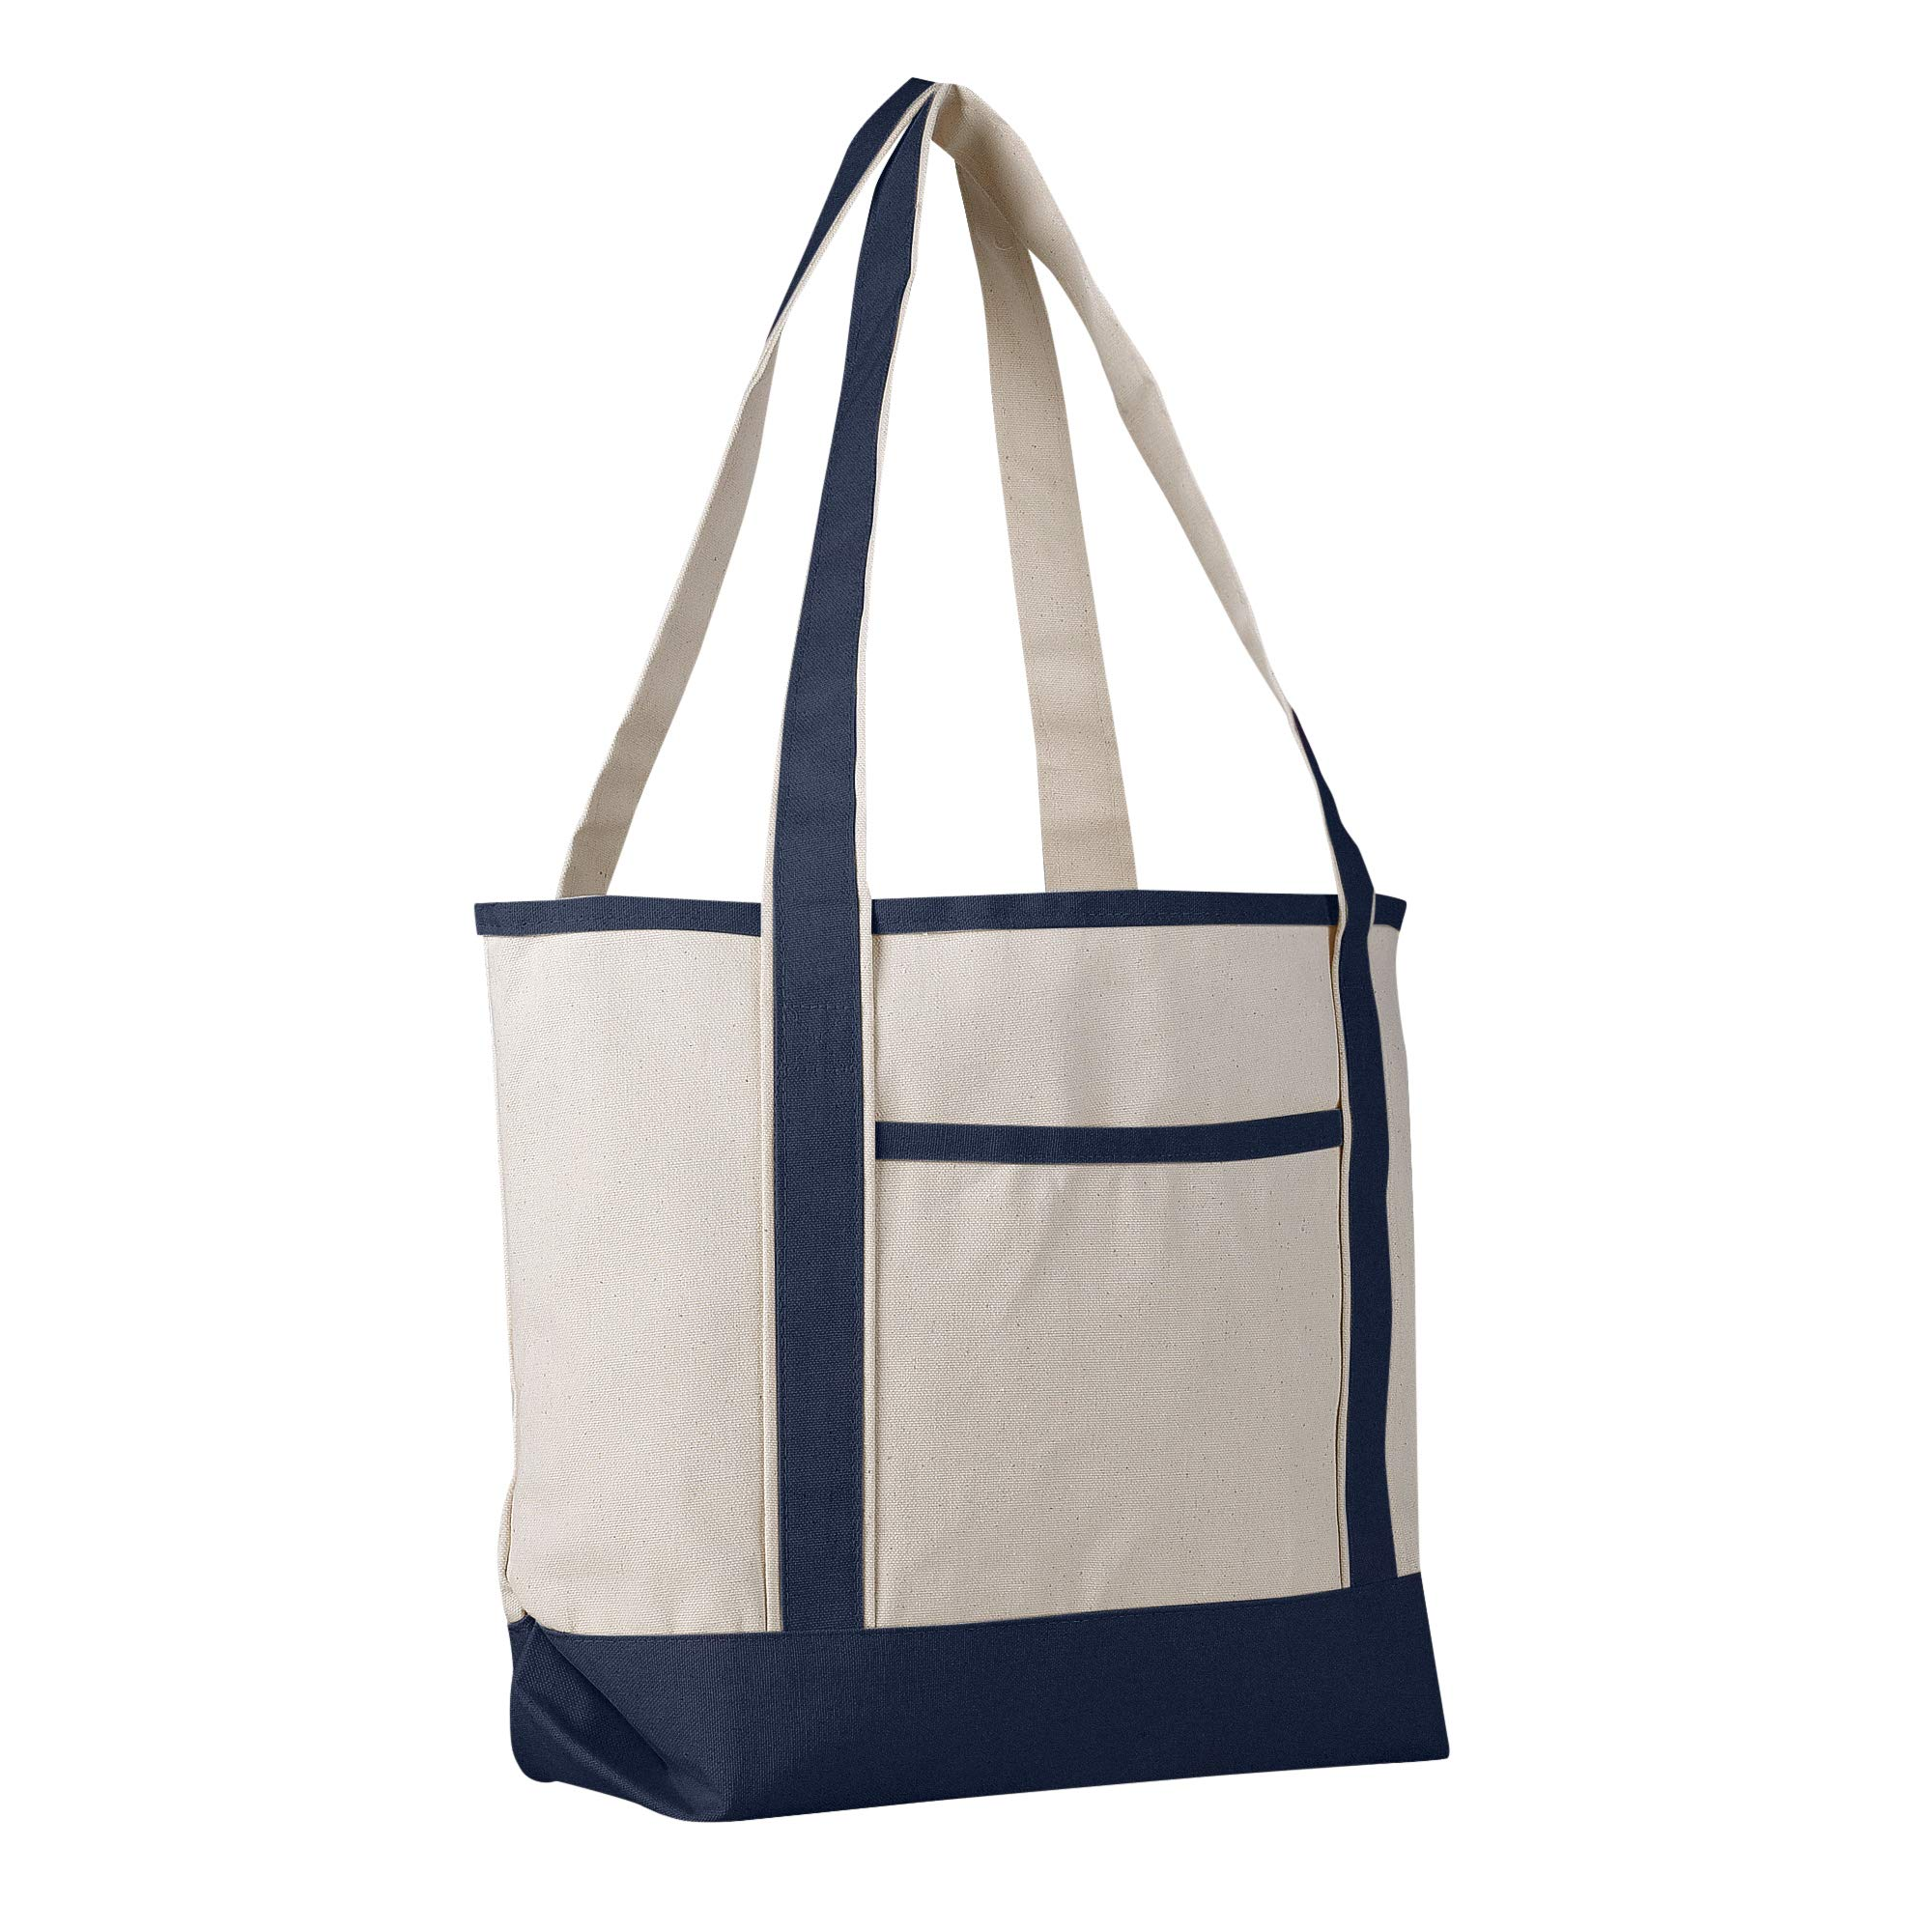 Canvas Boat Tote Bag - 18 inch - Wide Heavy Duty Sturdy & Reusable with Inside Zipper Pocket Cotton Canvas Beach Weekender Travel Luggage Totes for Women, Men, Kids, Girls, Boys (Navy)